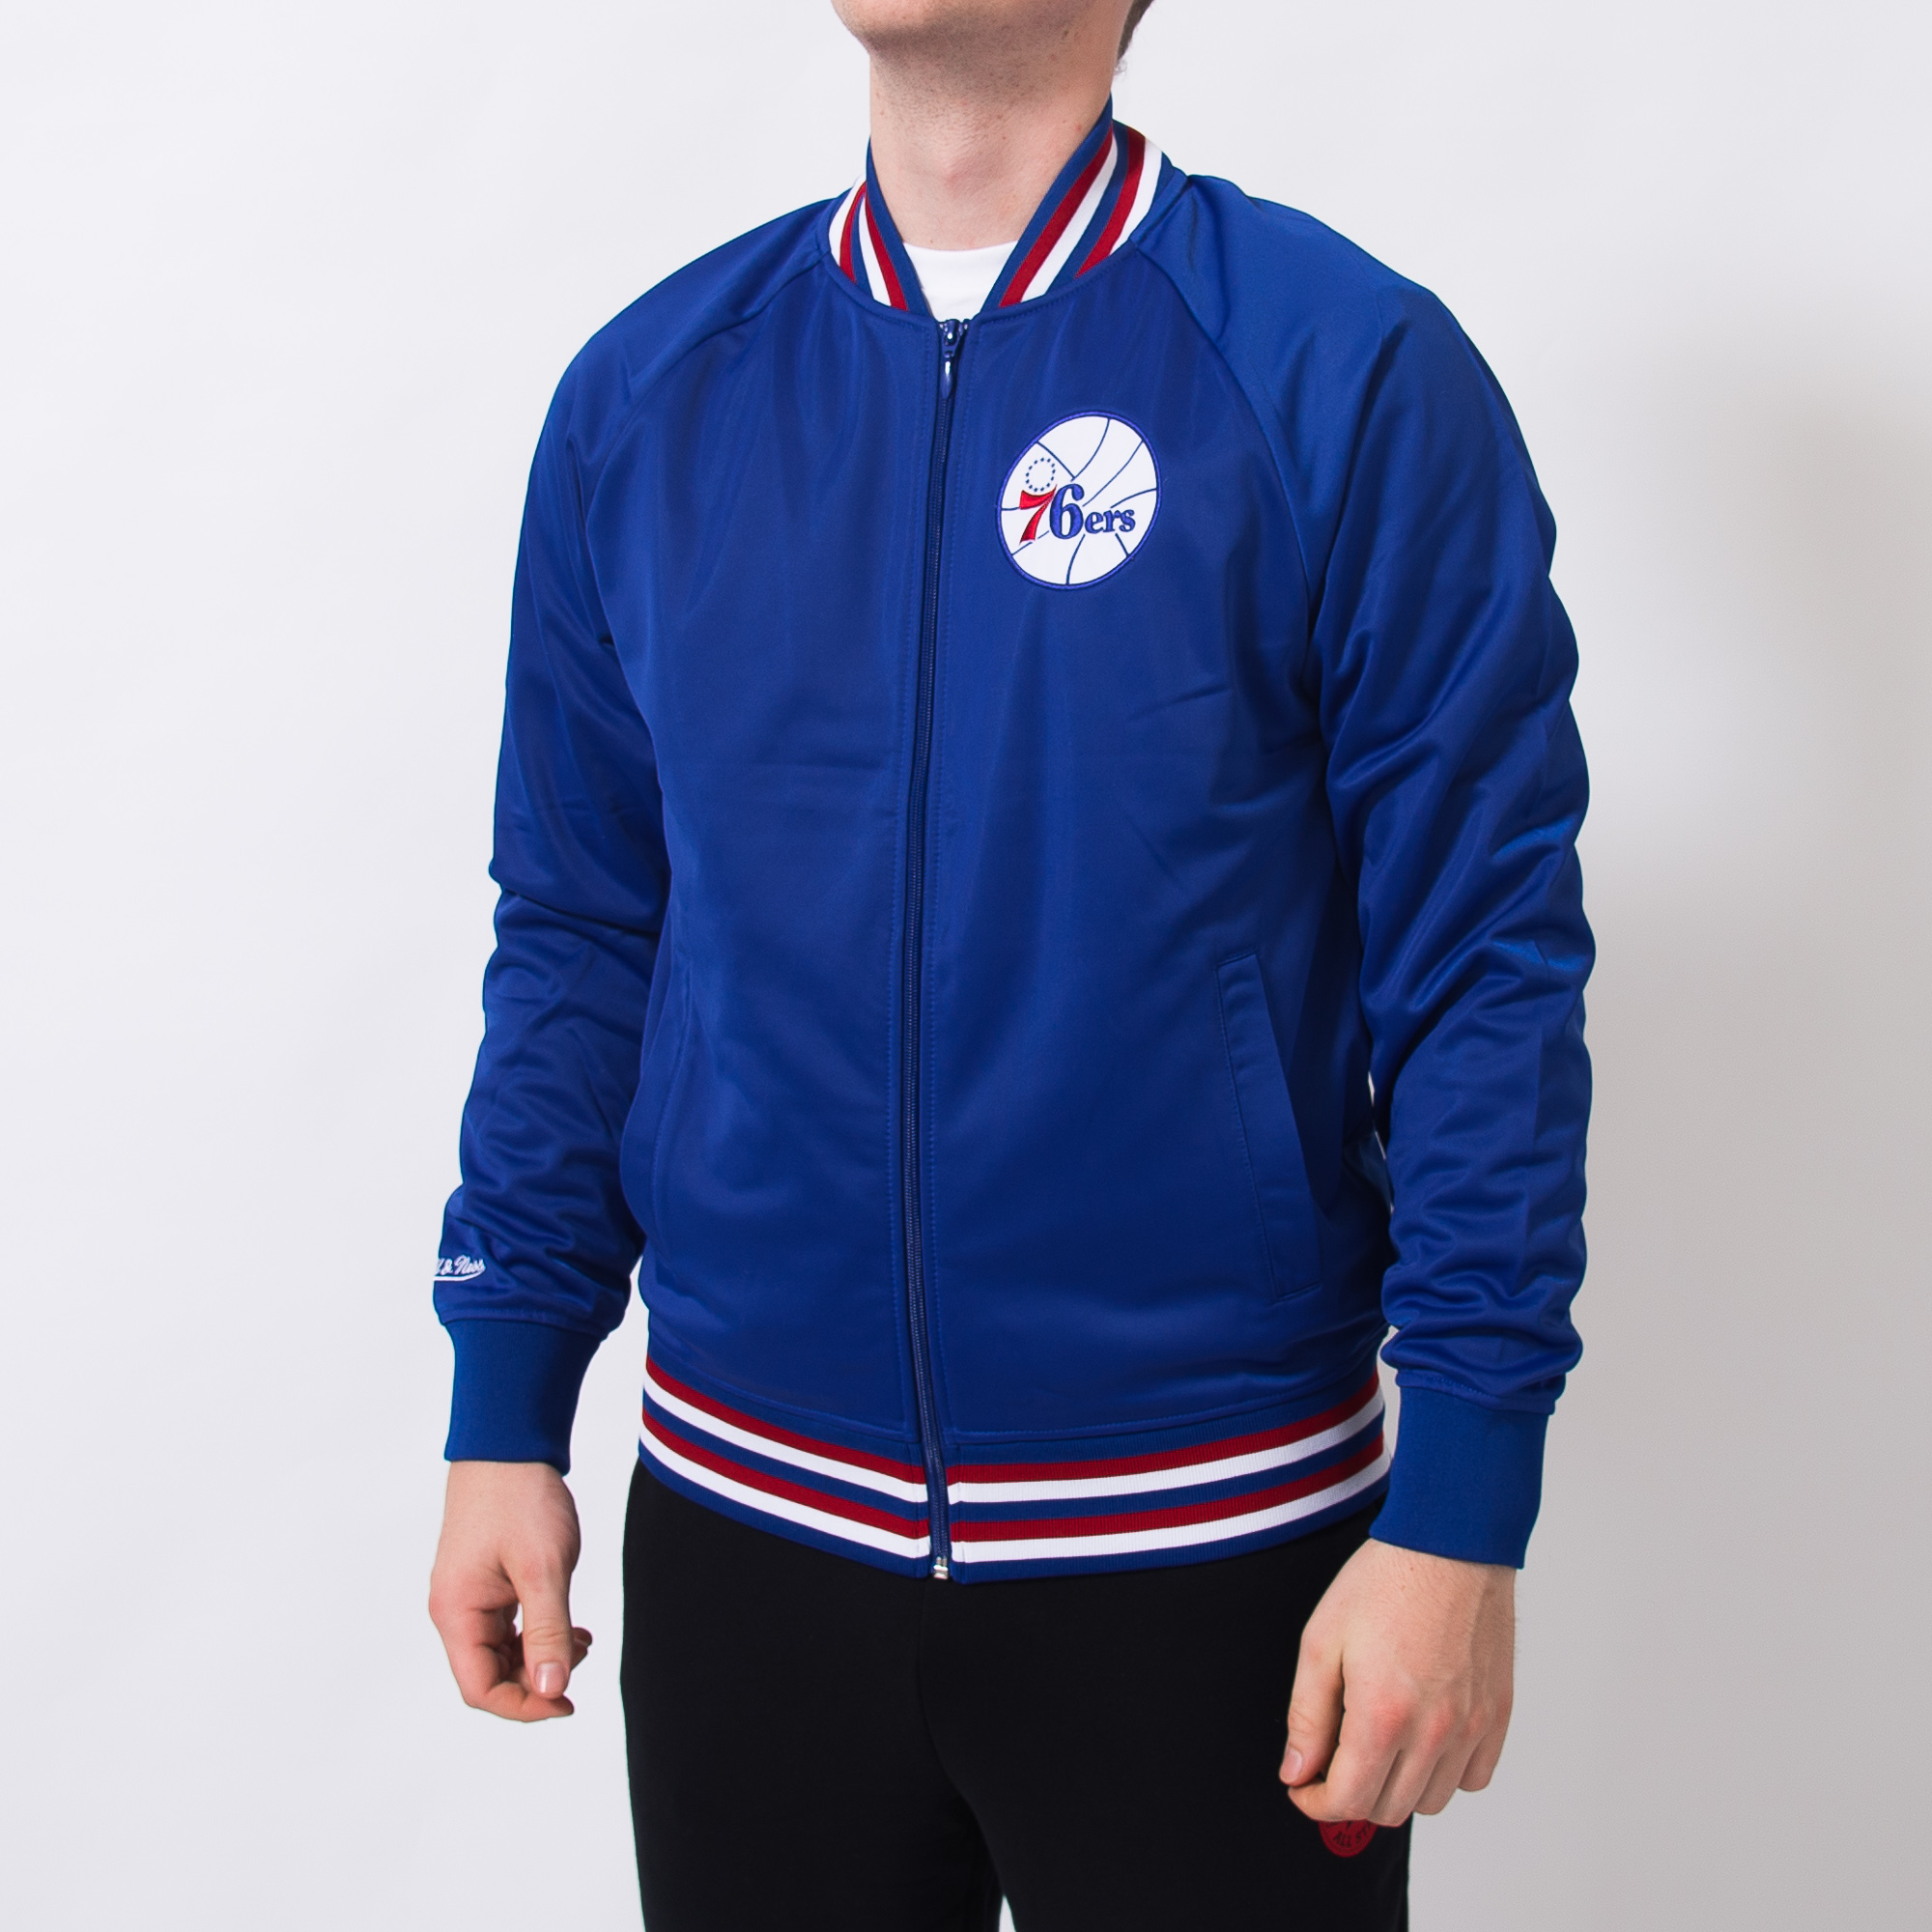 9f9f2cca4b3 Mitchell & Ness NBA Philadelphia 76ers Top Prospect Jacket - NBA Shop  Philadelphia 76ers Merchandise - Superfanas.lt